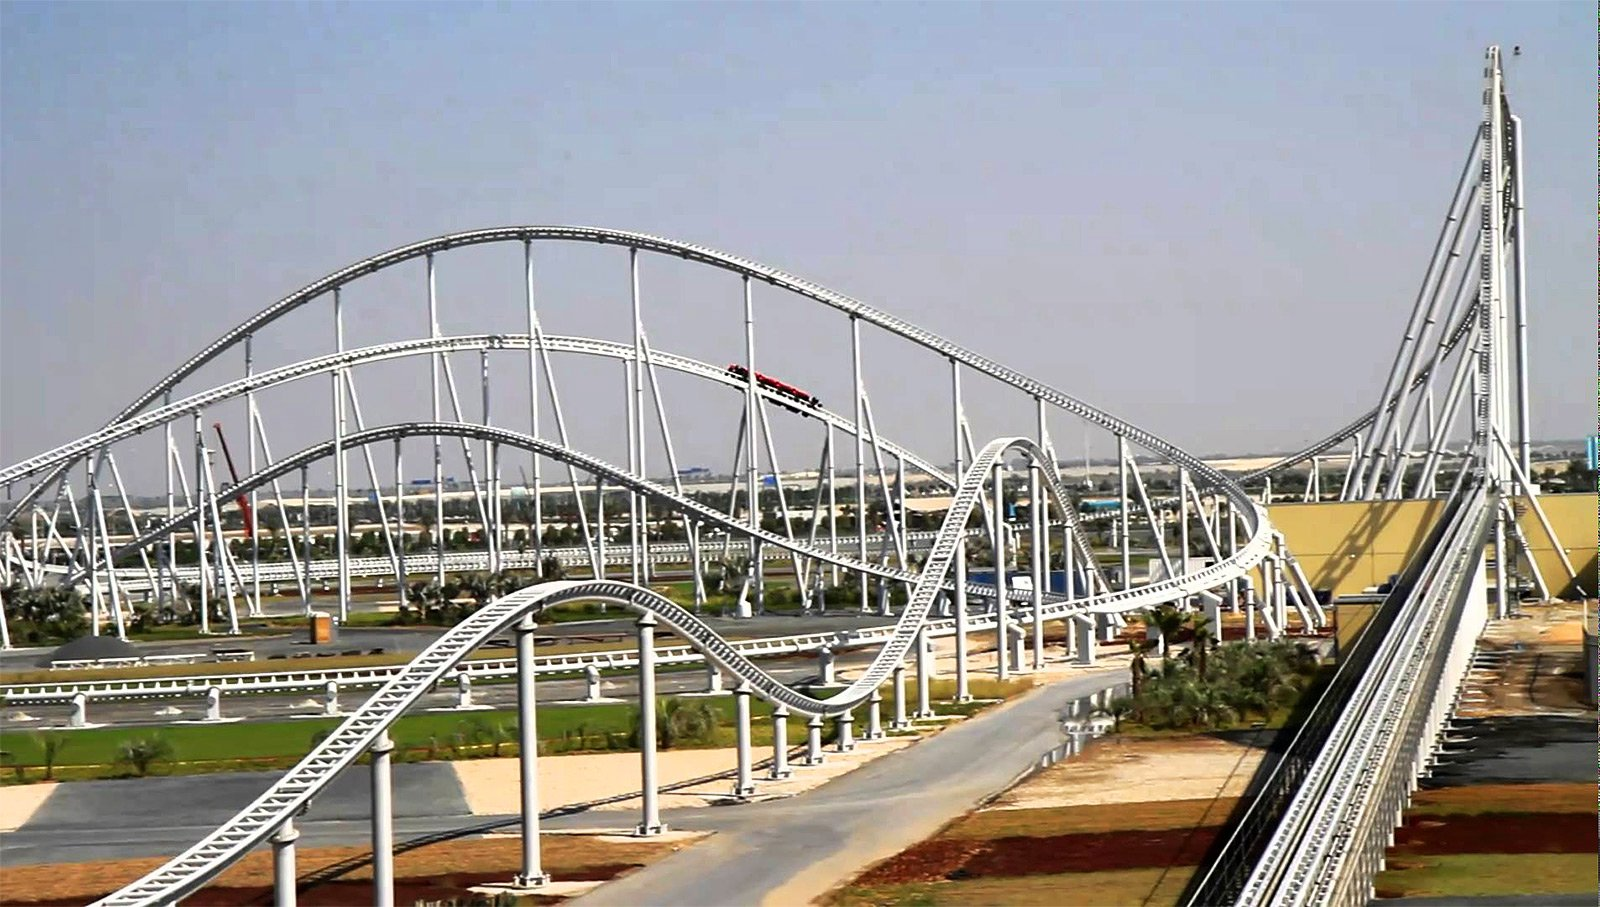 How to ride the most speedy roller coaster in the world in Abu Dhabi